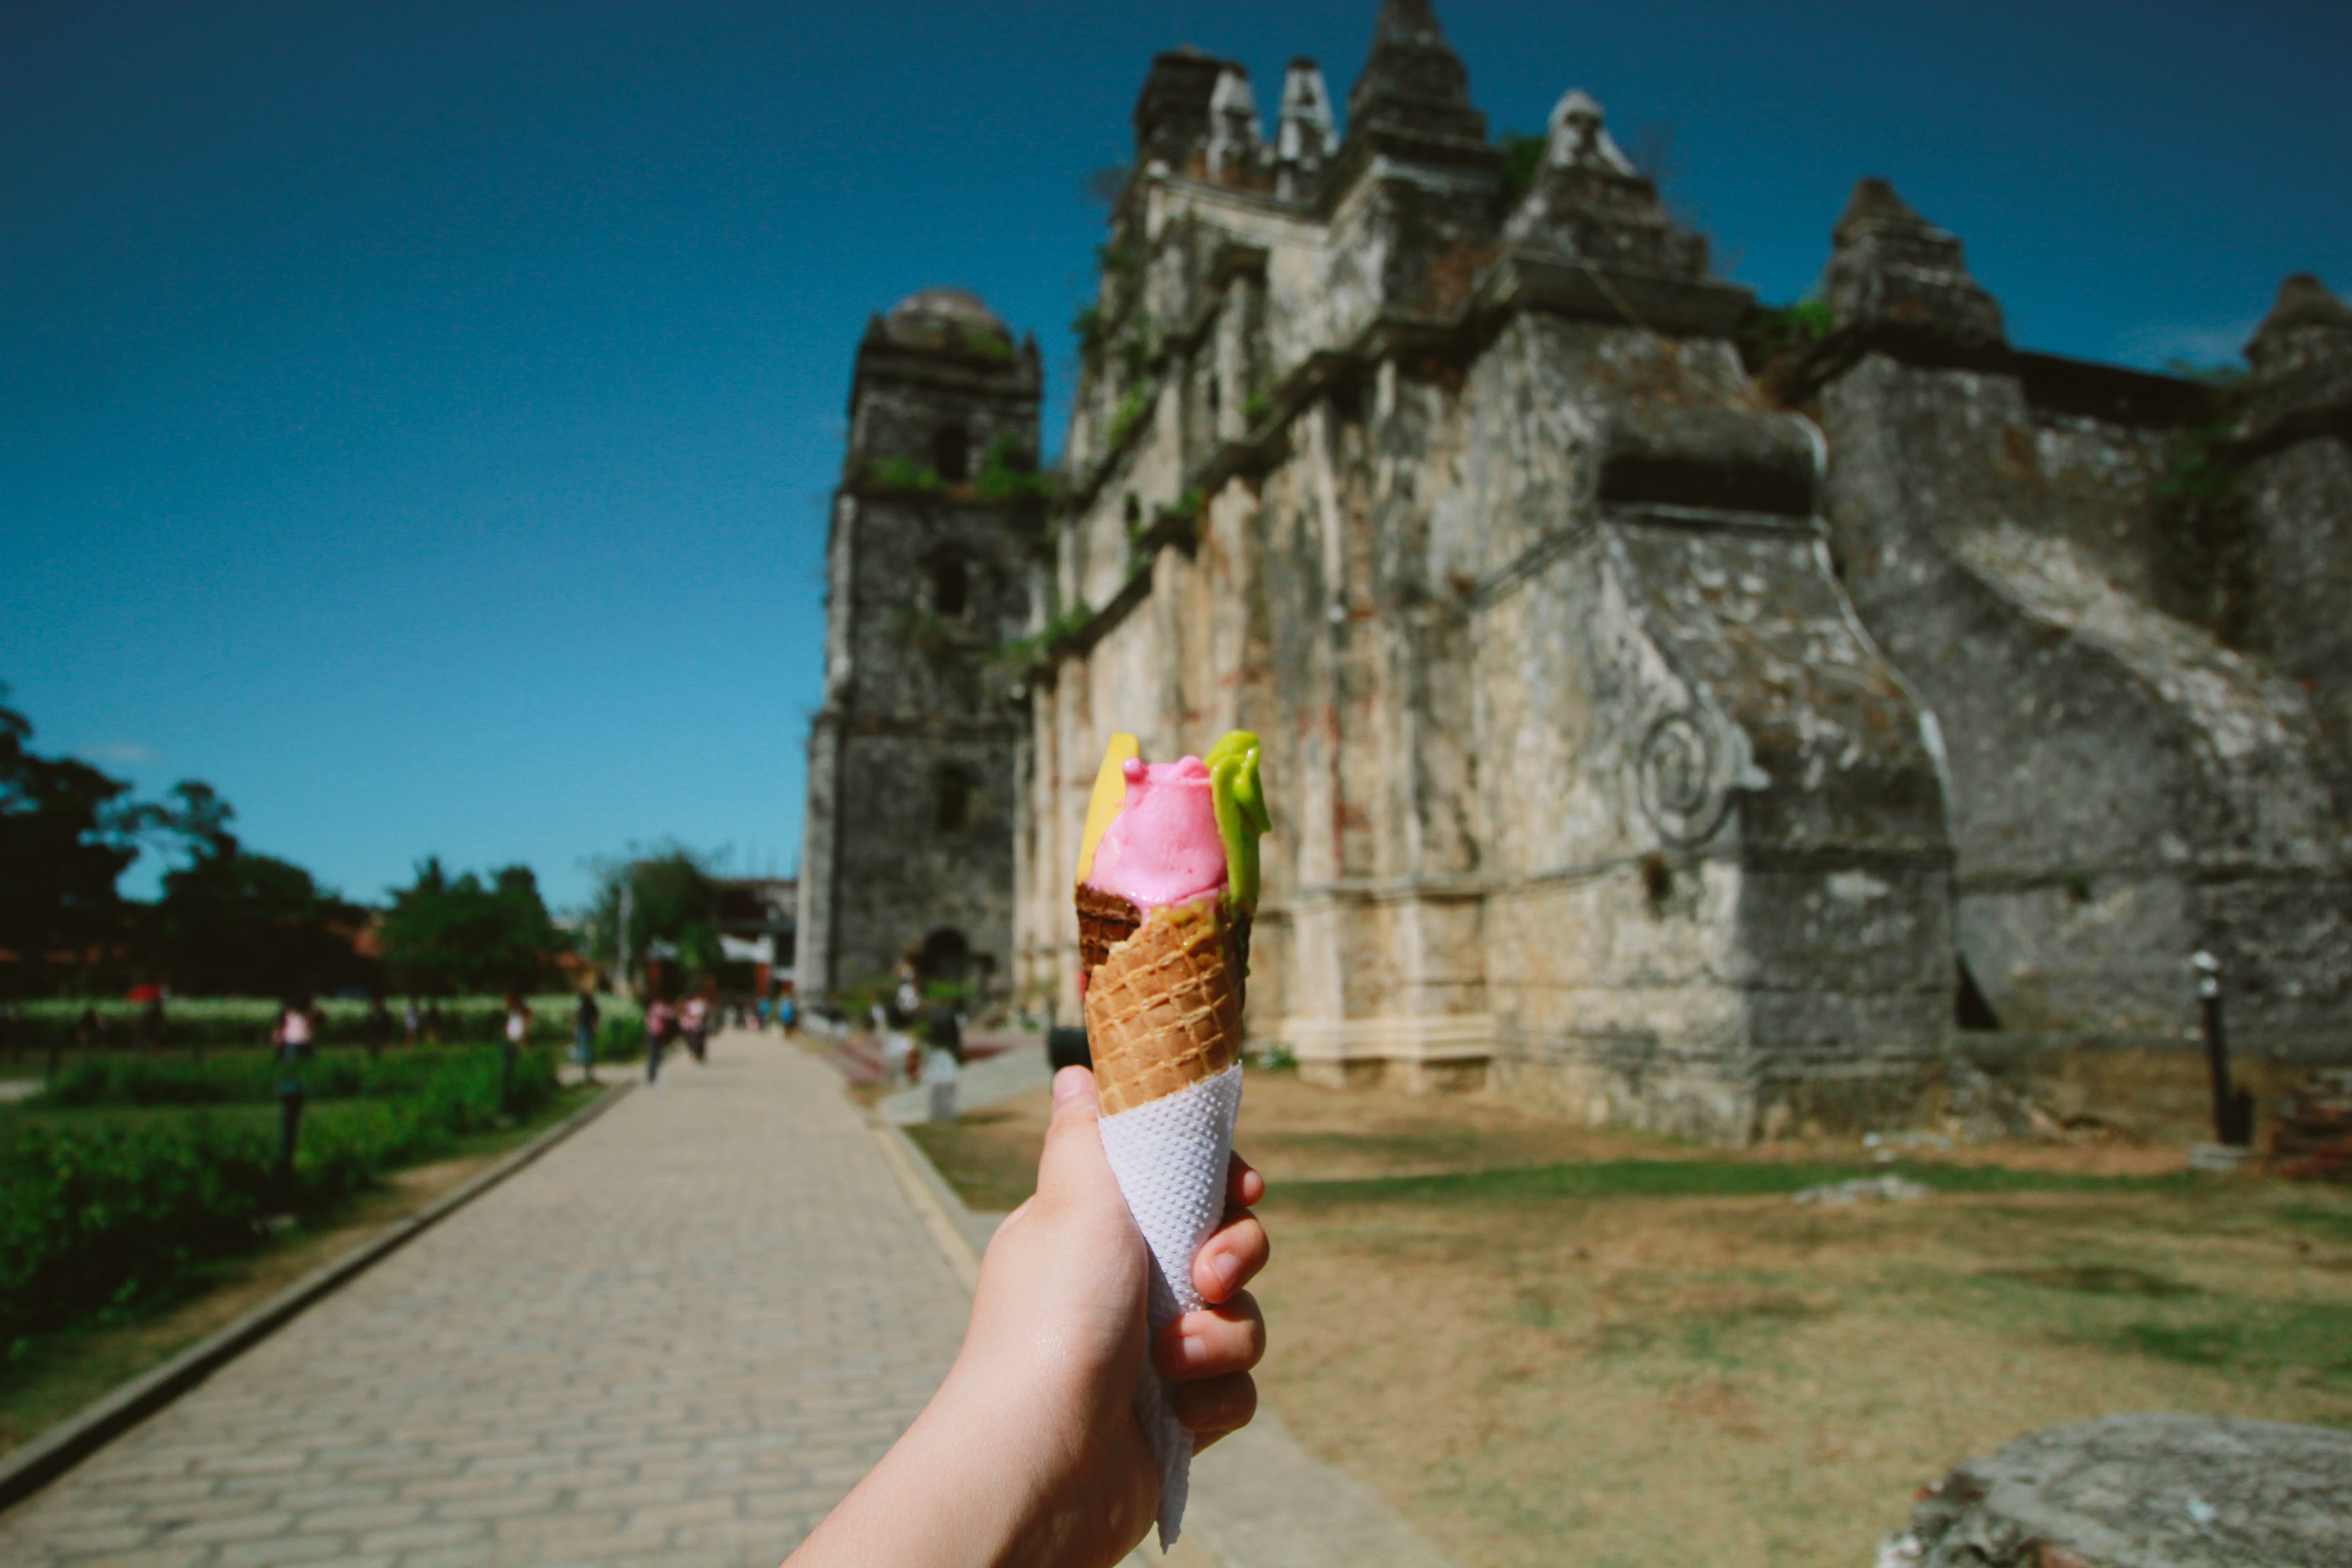 Person Holding Ice Cream With Cone